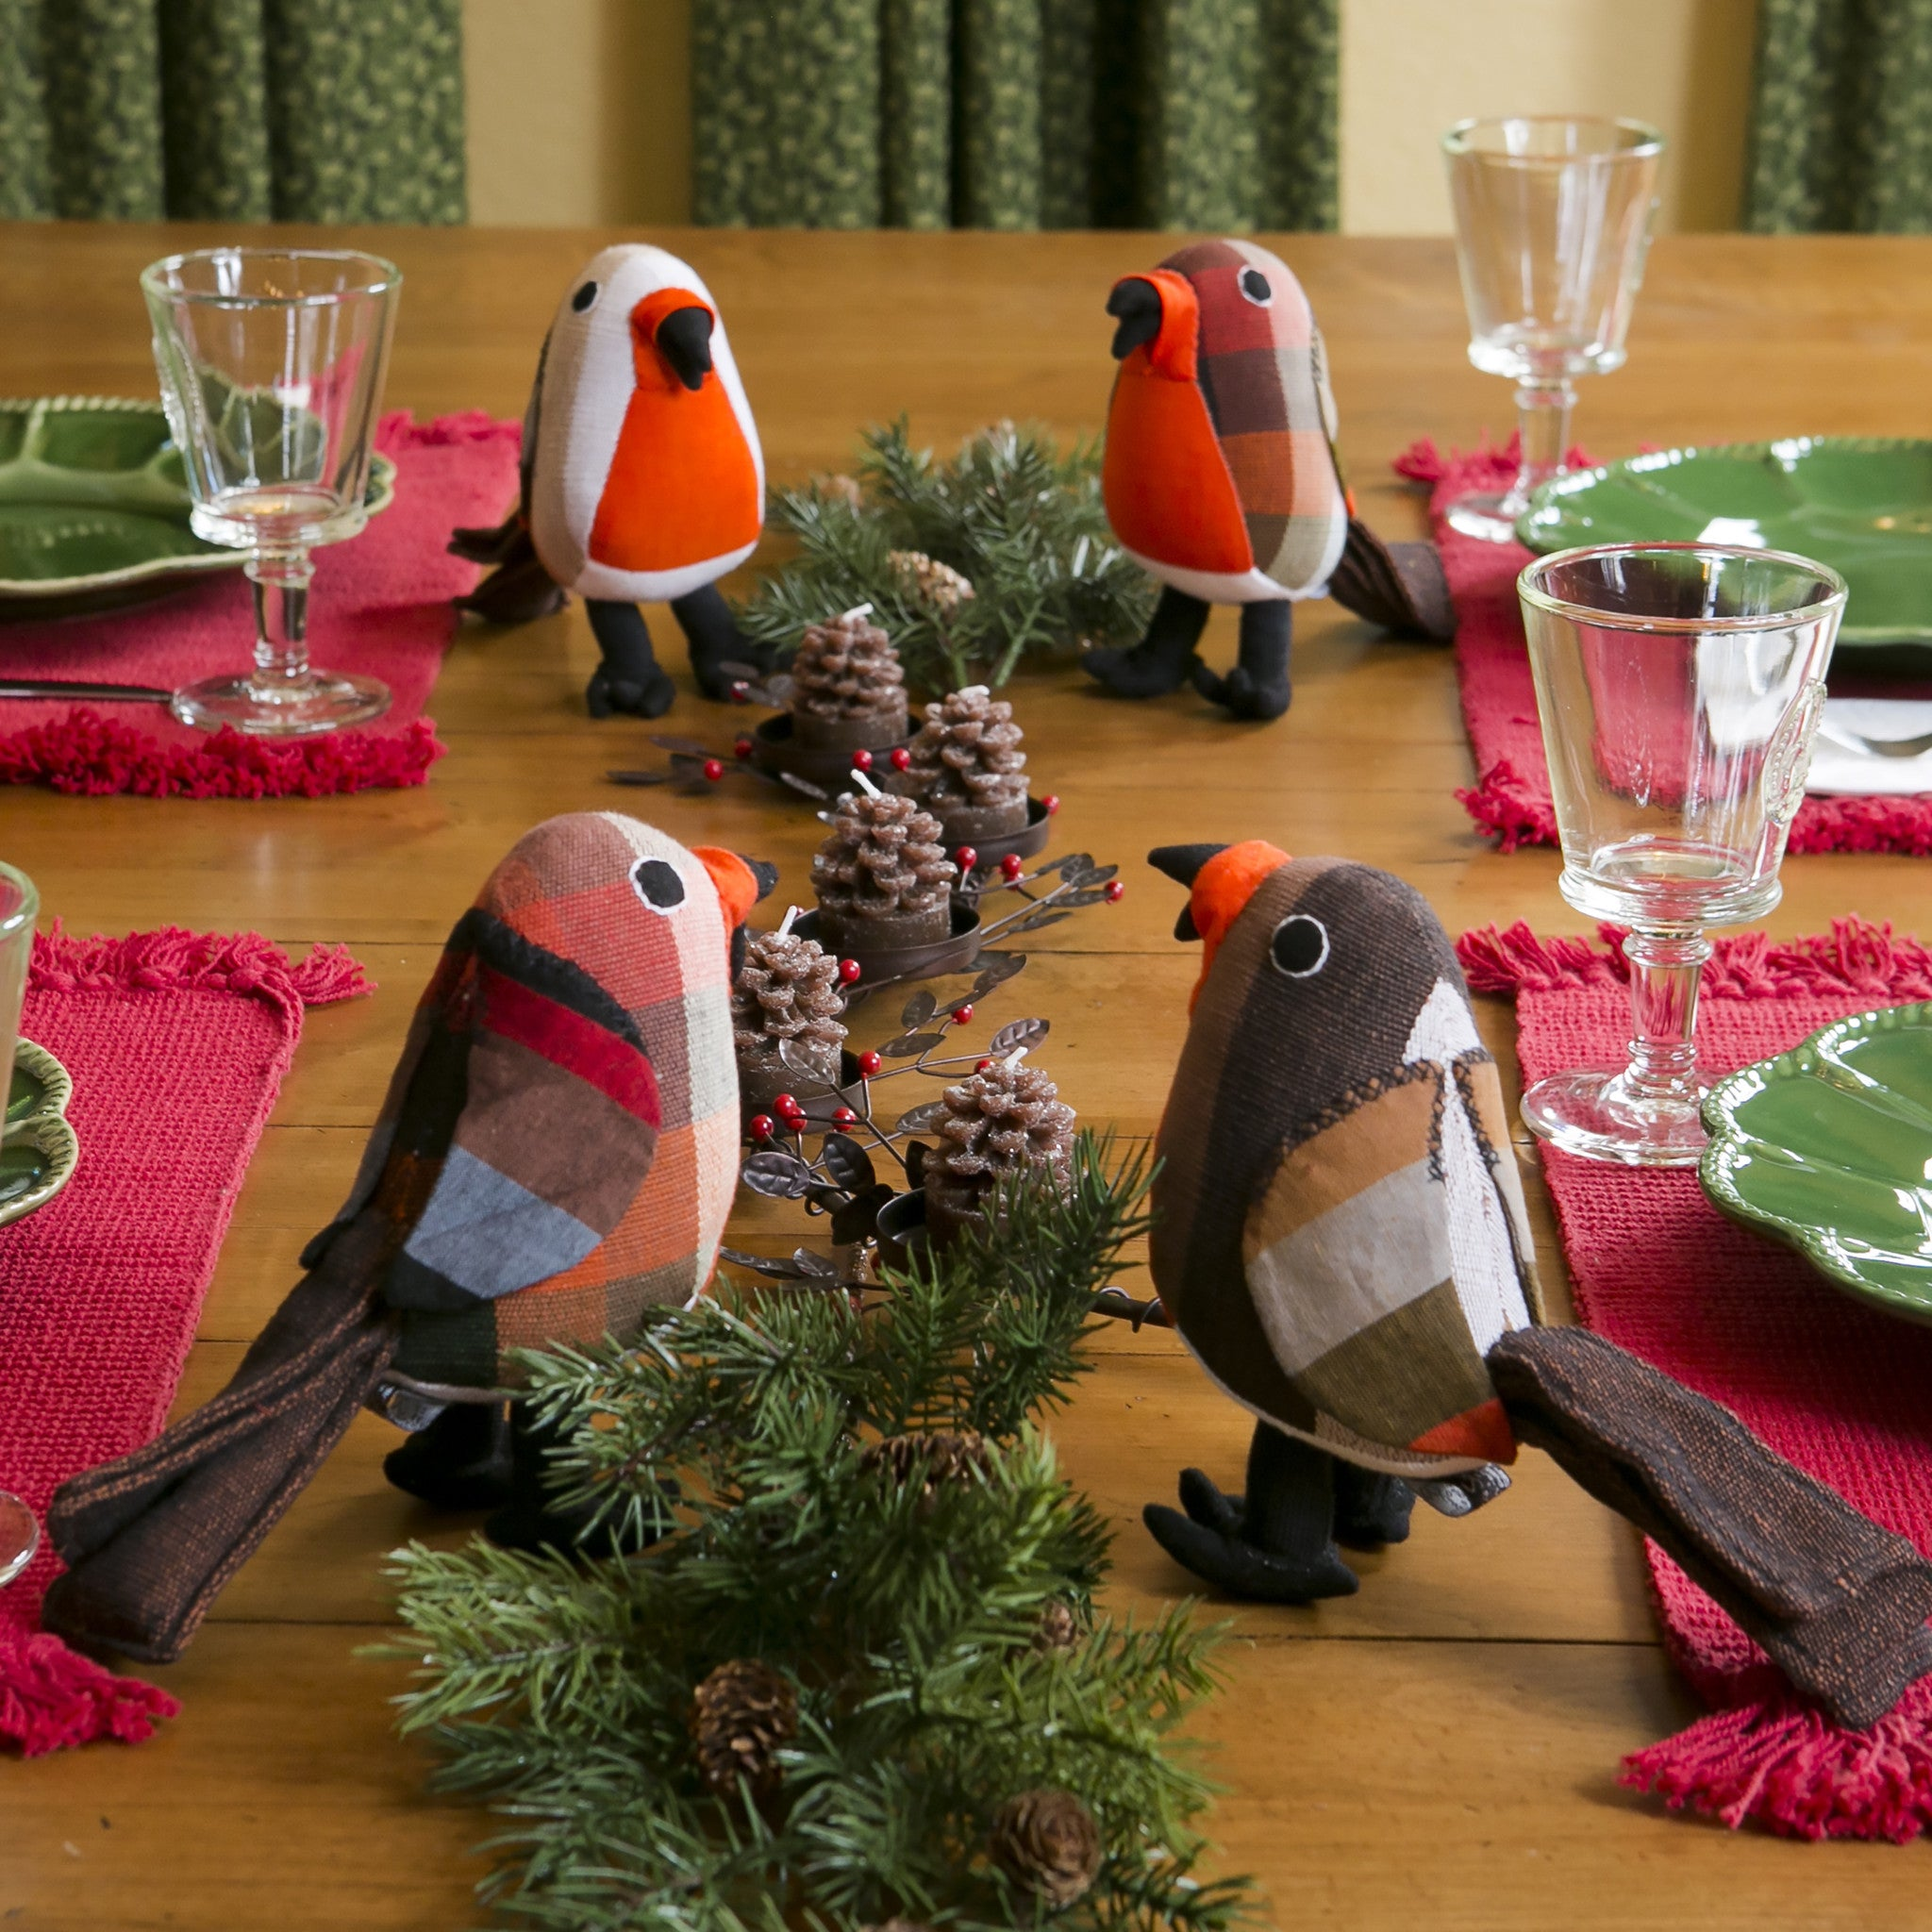 Red Robins will be the perfect addition to your table centerpiece!